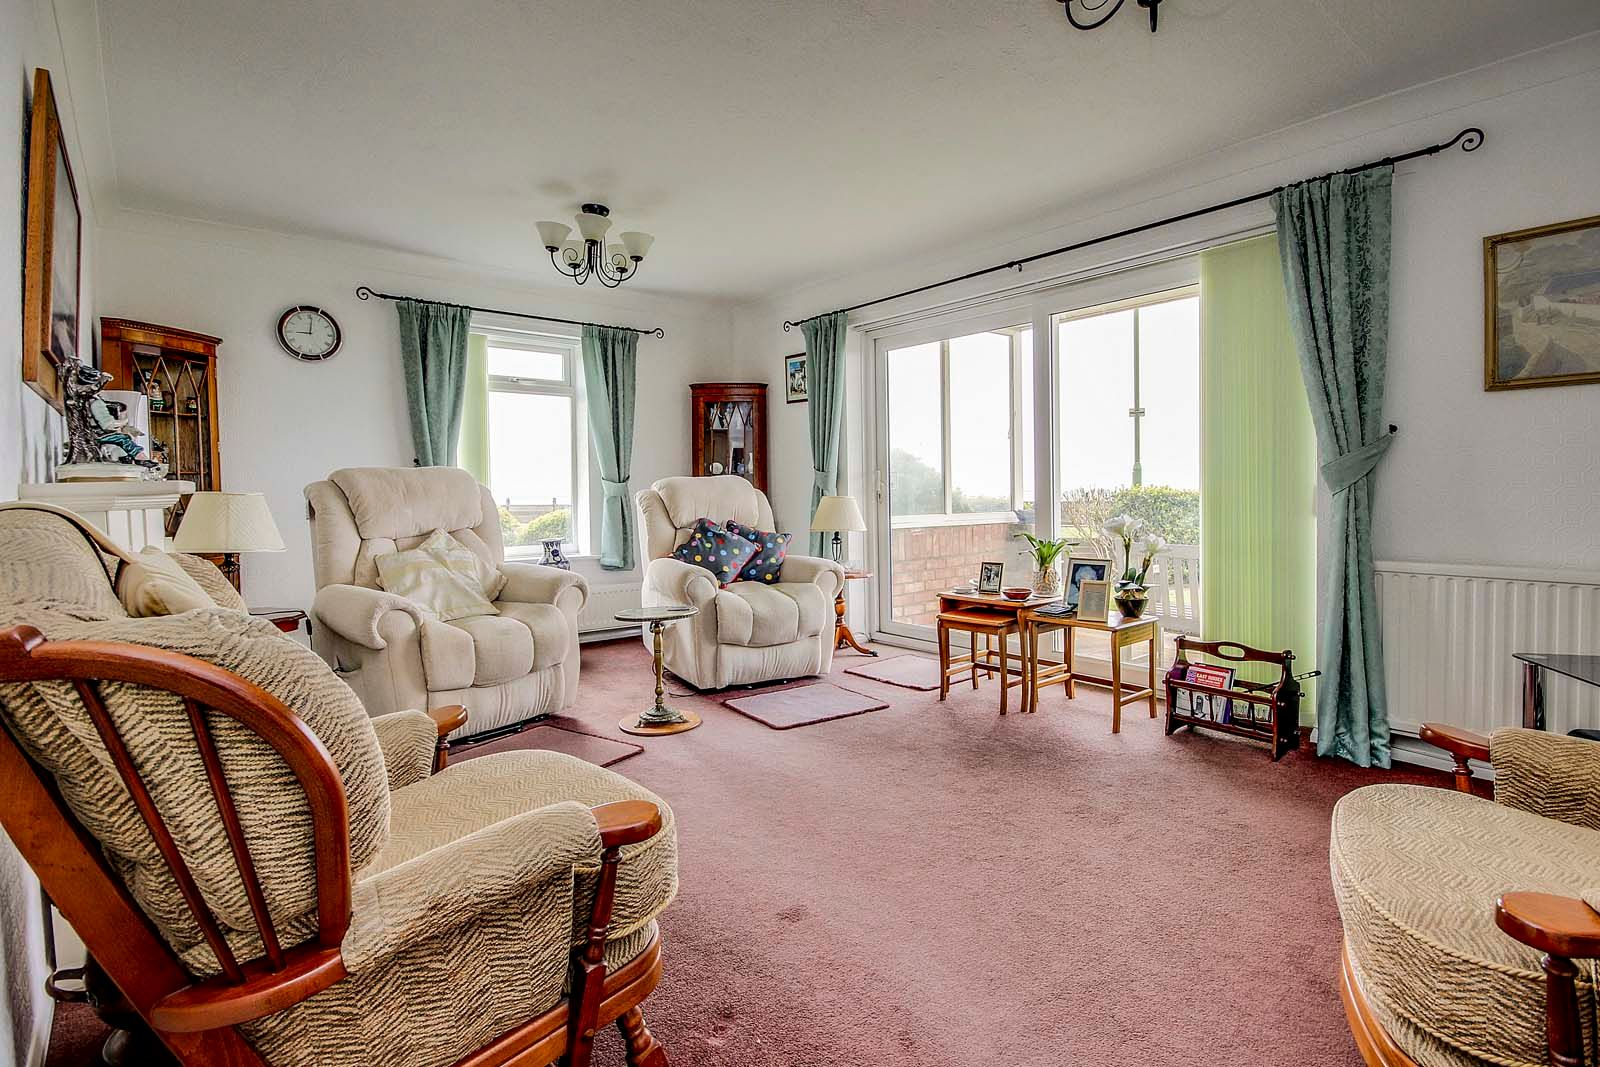 2 bed Apartment for sale in Rustington - Sitting room (Property Image 3)